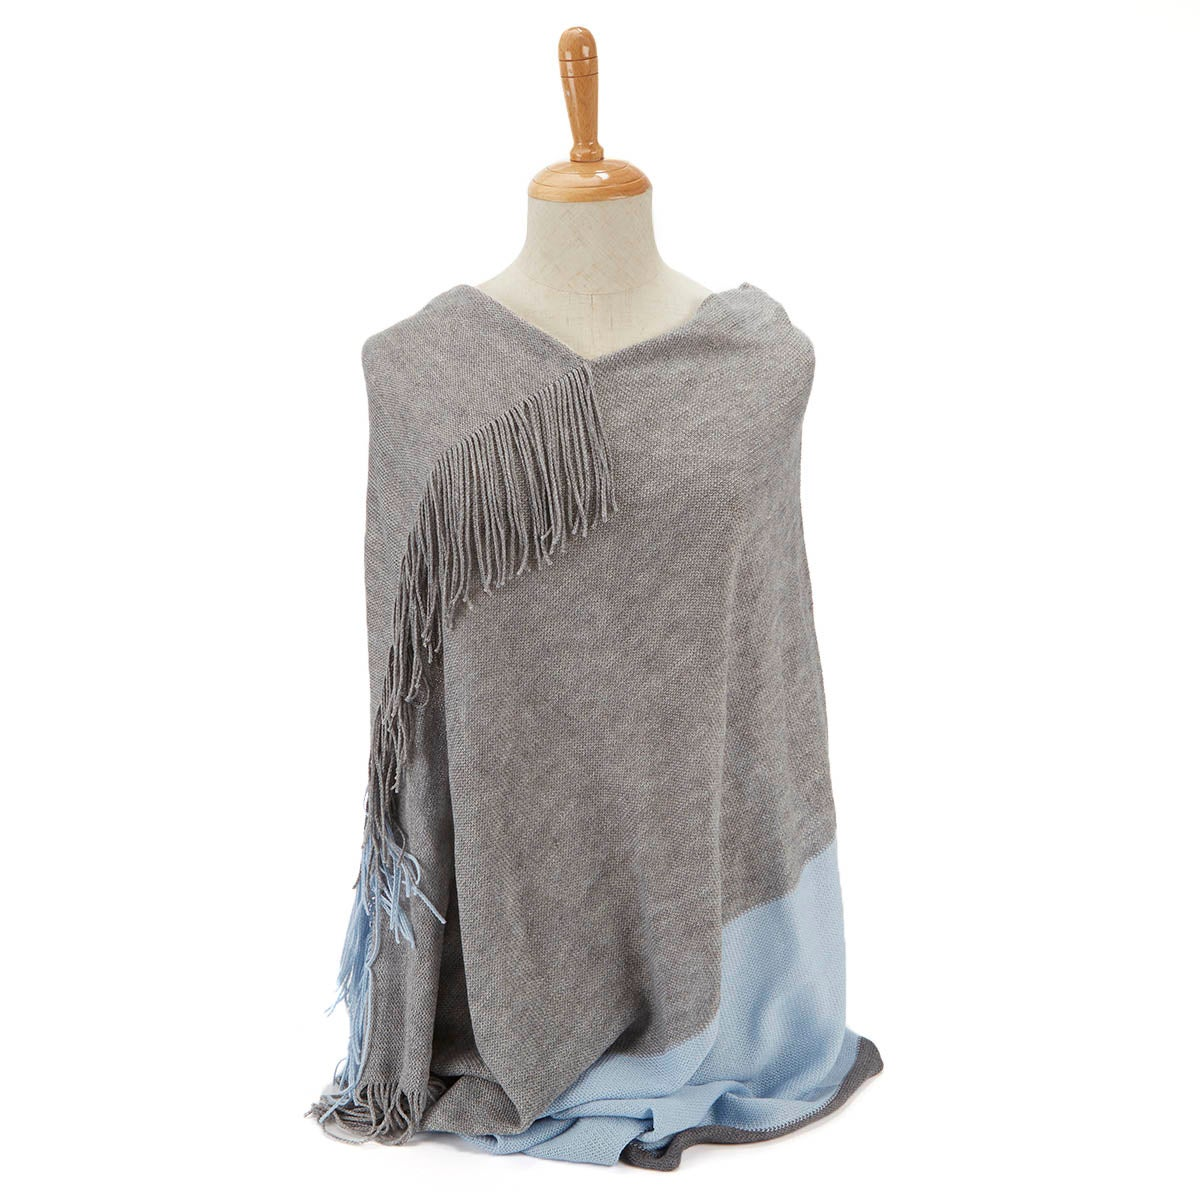 Lds Raschel gry/blue loop and poncho